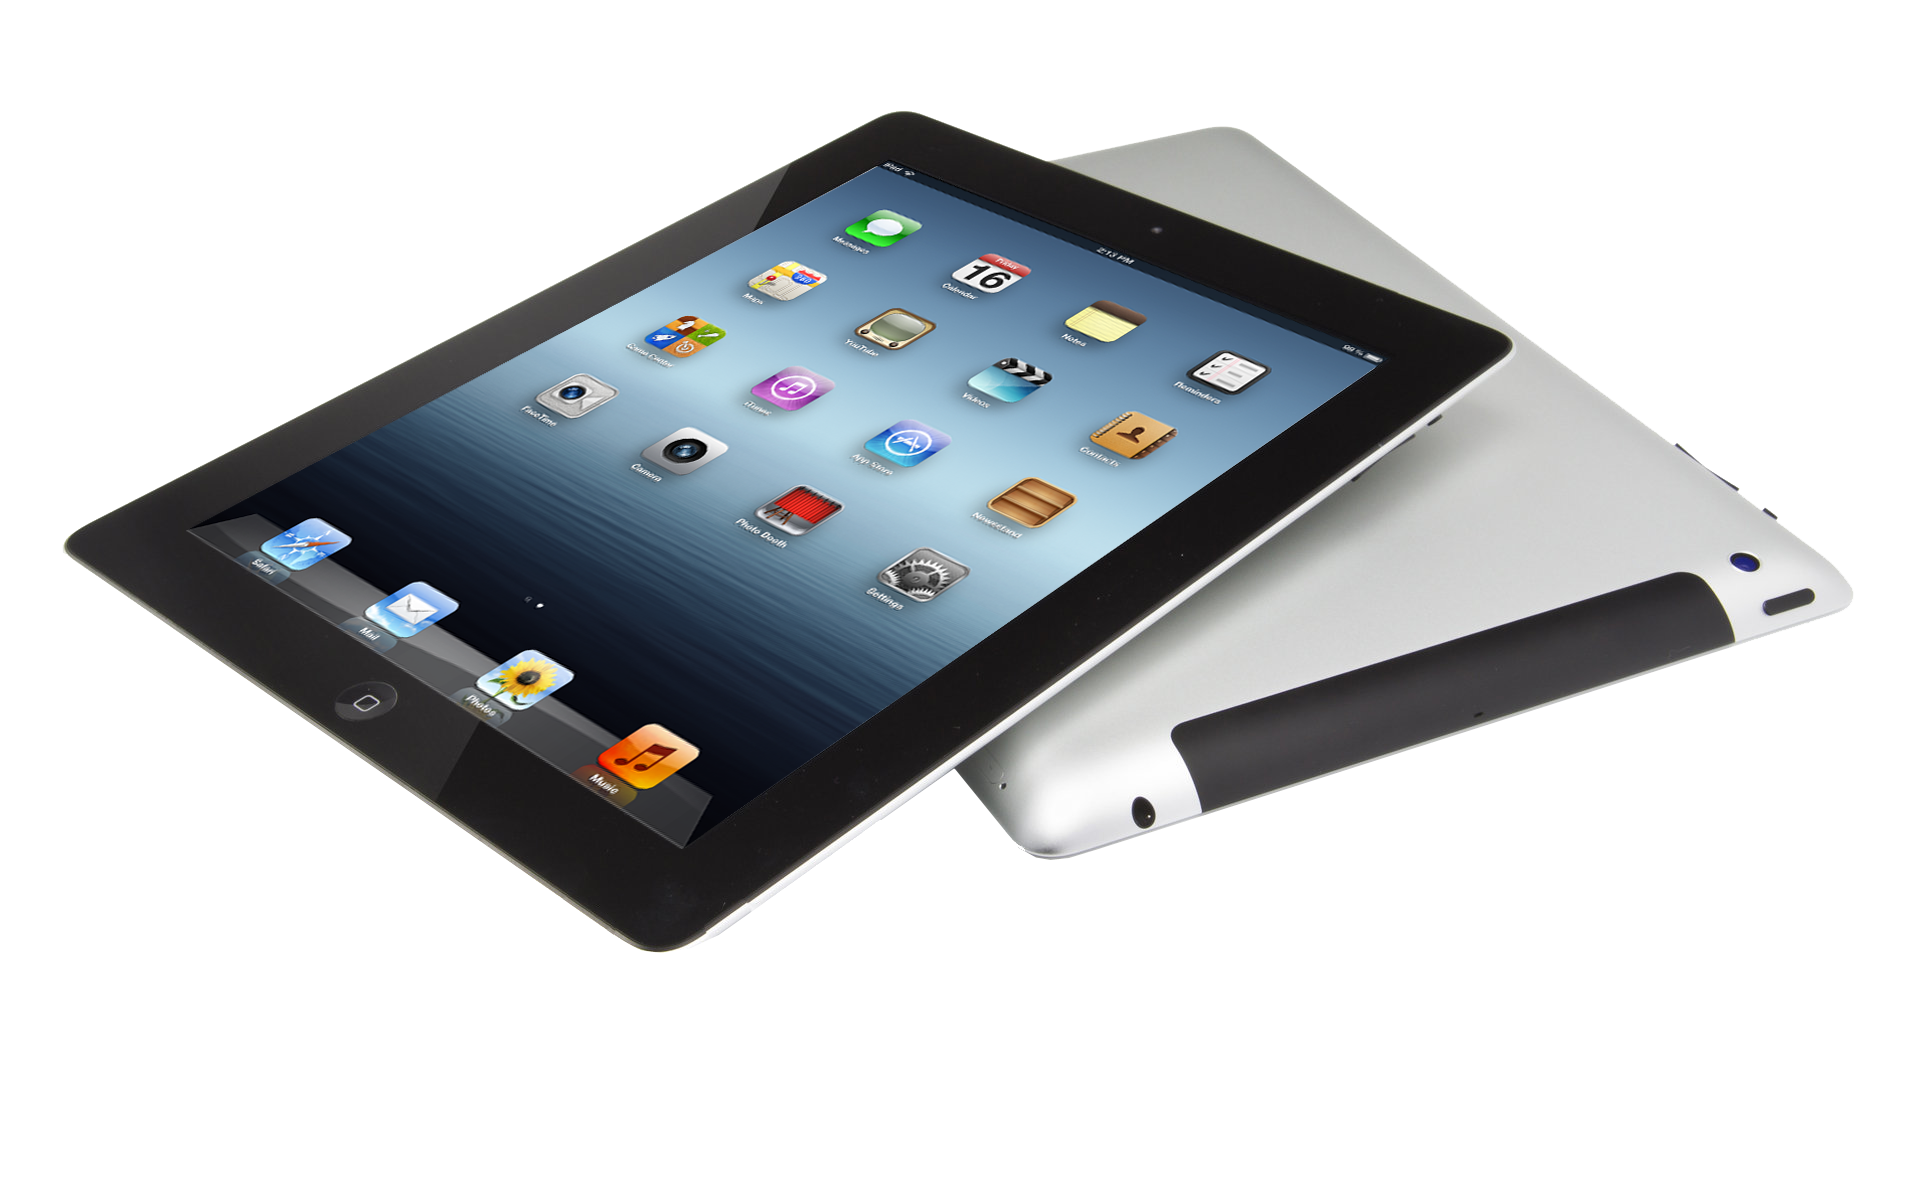 Apple ipad tablet clipart jpg library download Apple Tablet PNG Image - PurePNG | Free transparent CC0 PNG Image ... jpg library download